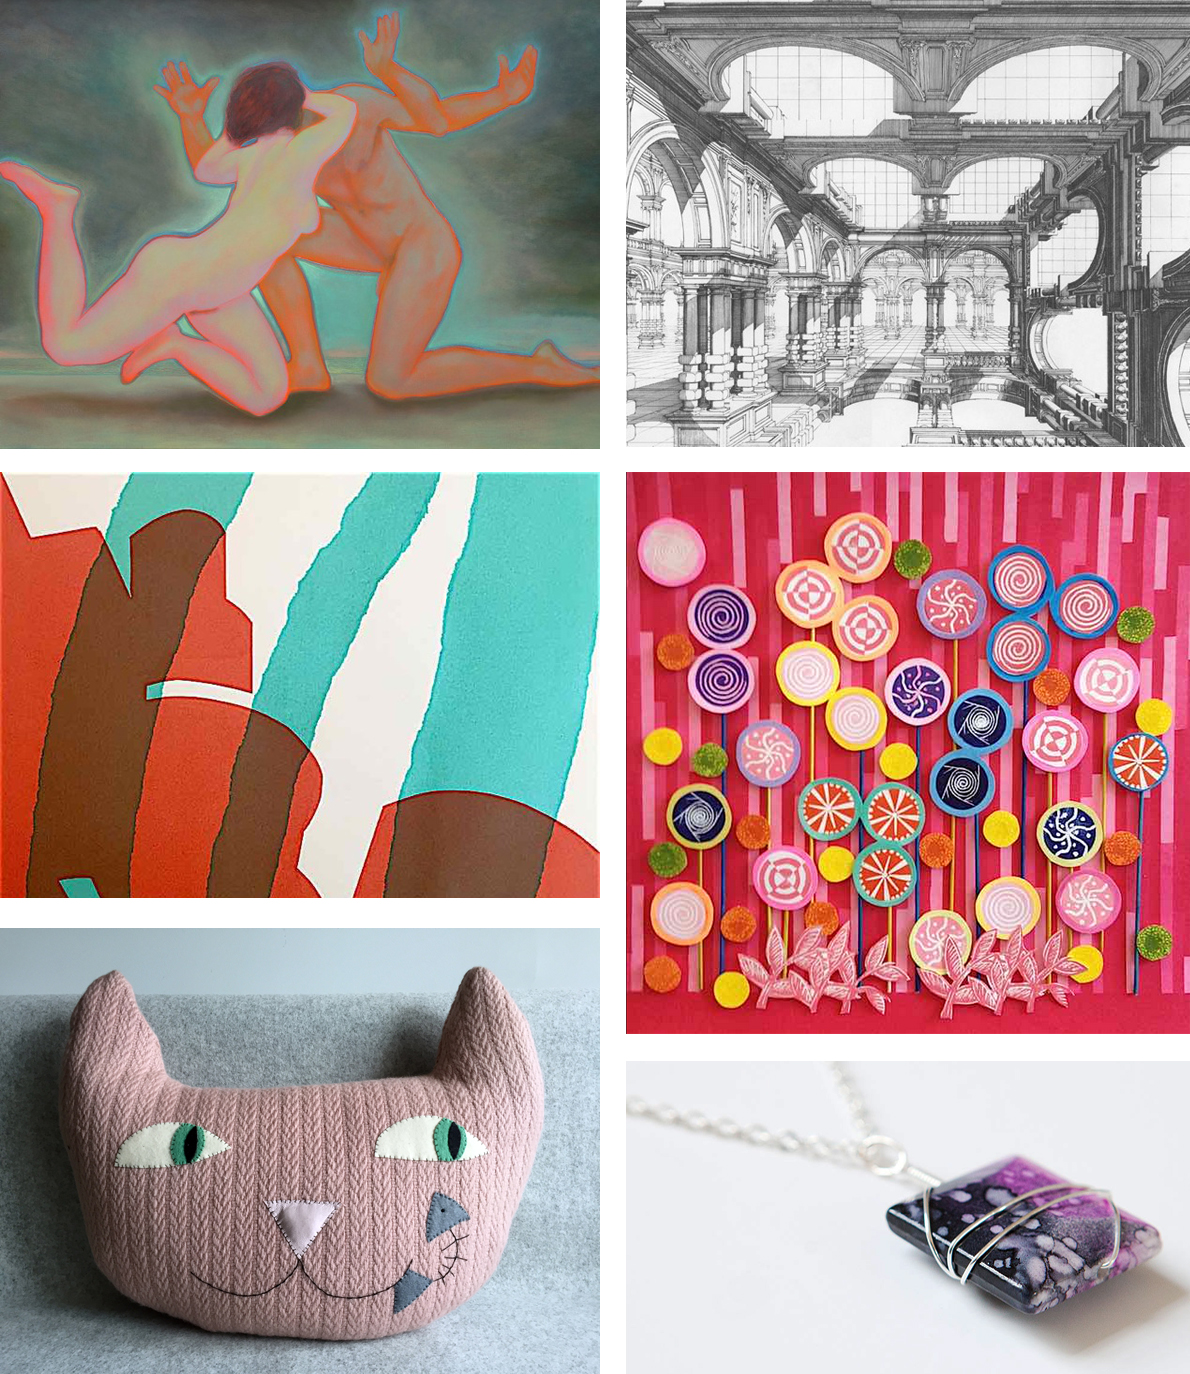 Camberwell open studios fine artists Emanuele Gori and Paul Draper, printmaker Pauline Amphlett, interior products by Mr & Mrs house, and Norwegian crafts by Smed